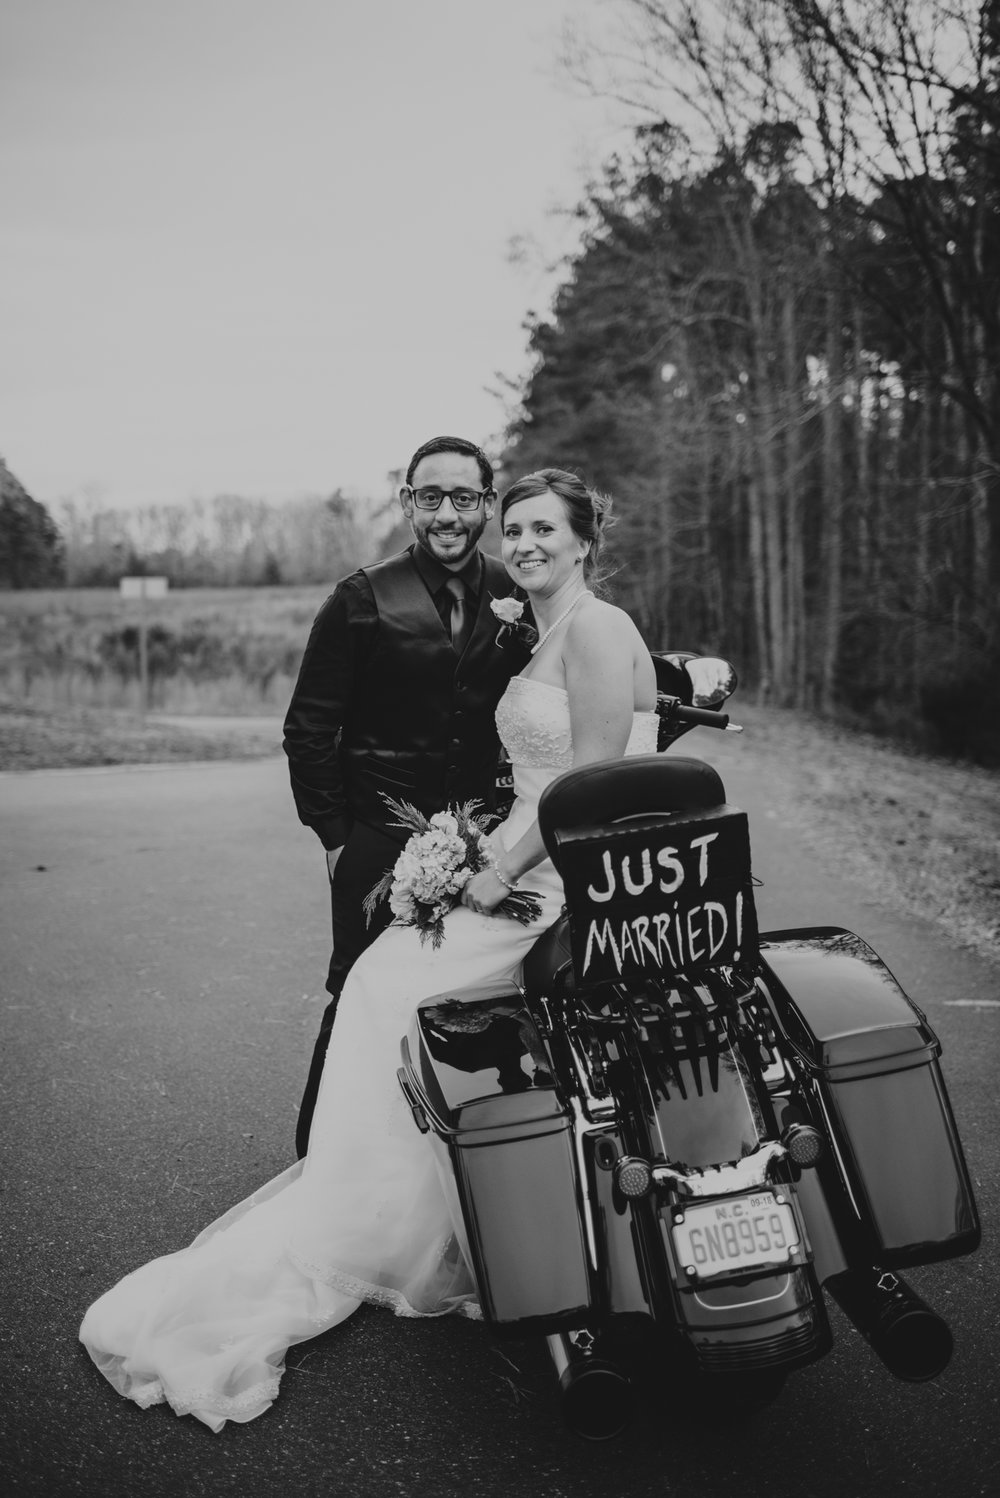 the-bride-and-groom-pose-on-their-bike-after-getting-married-at-an-intimate-home-ceremony-in-raleigh.jpg